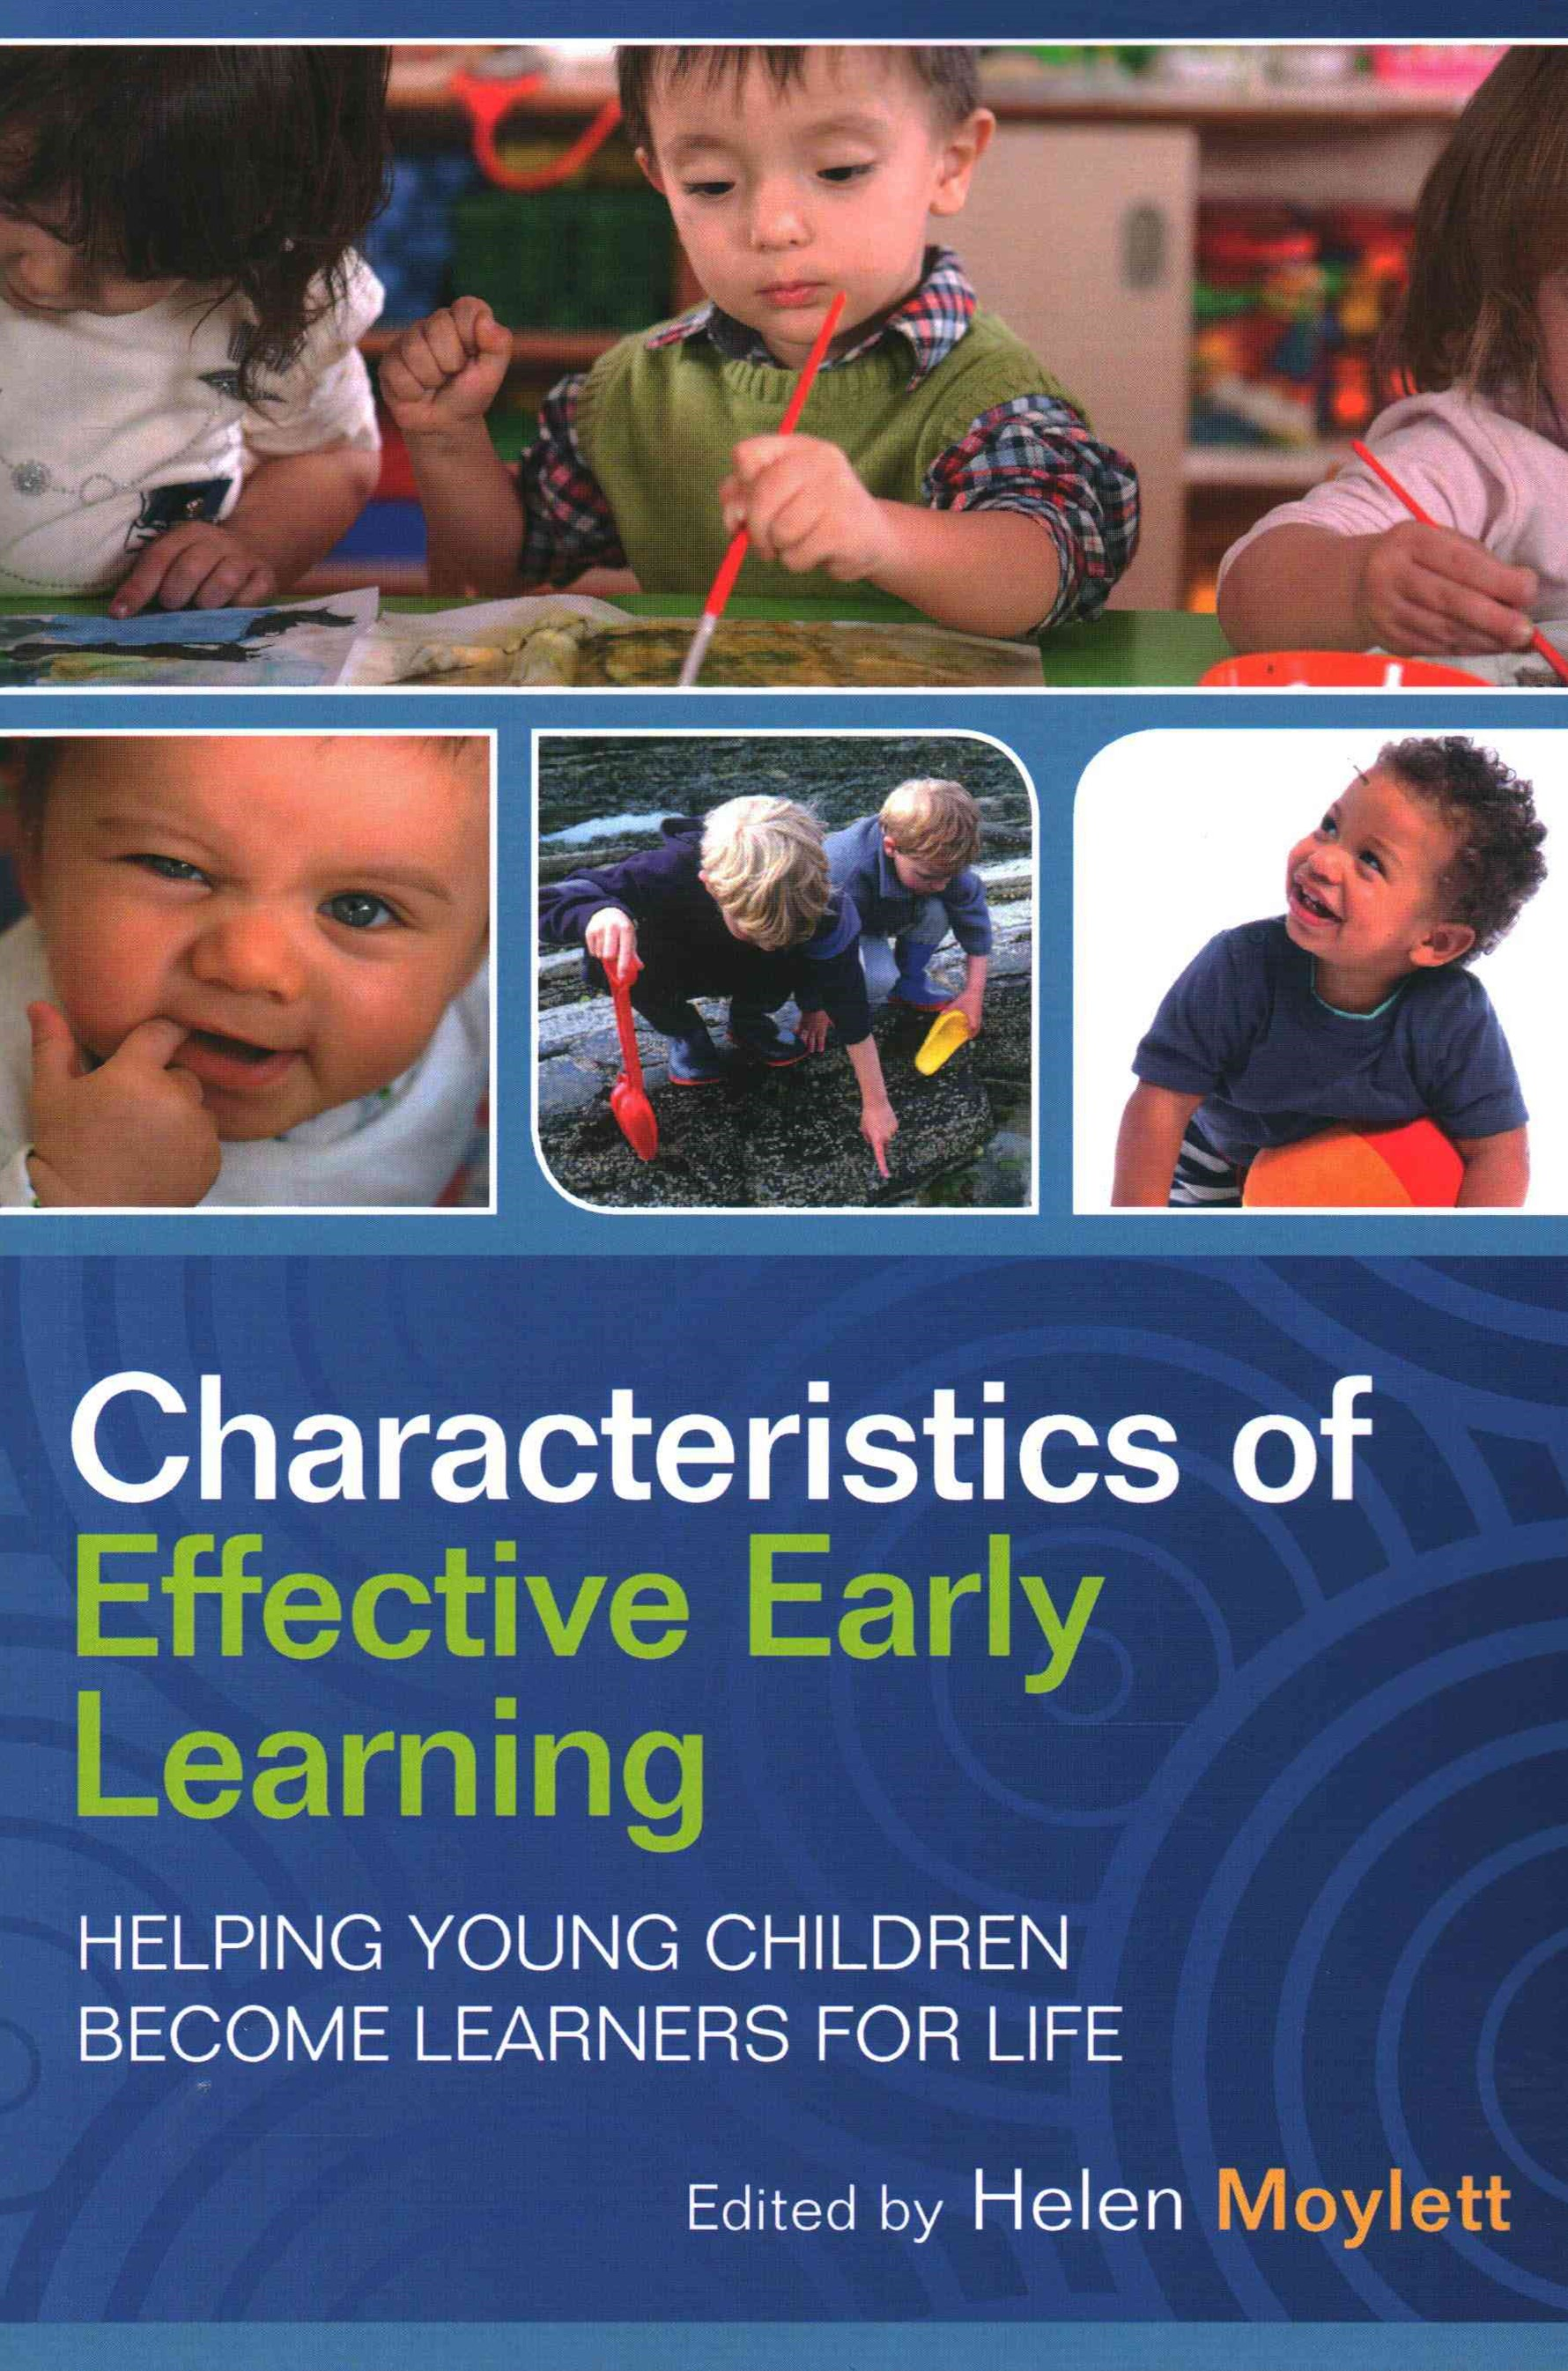 Characteristics of Effective Early Learning